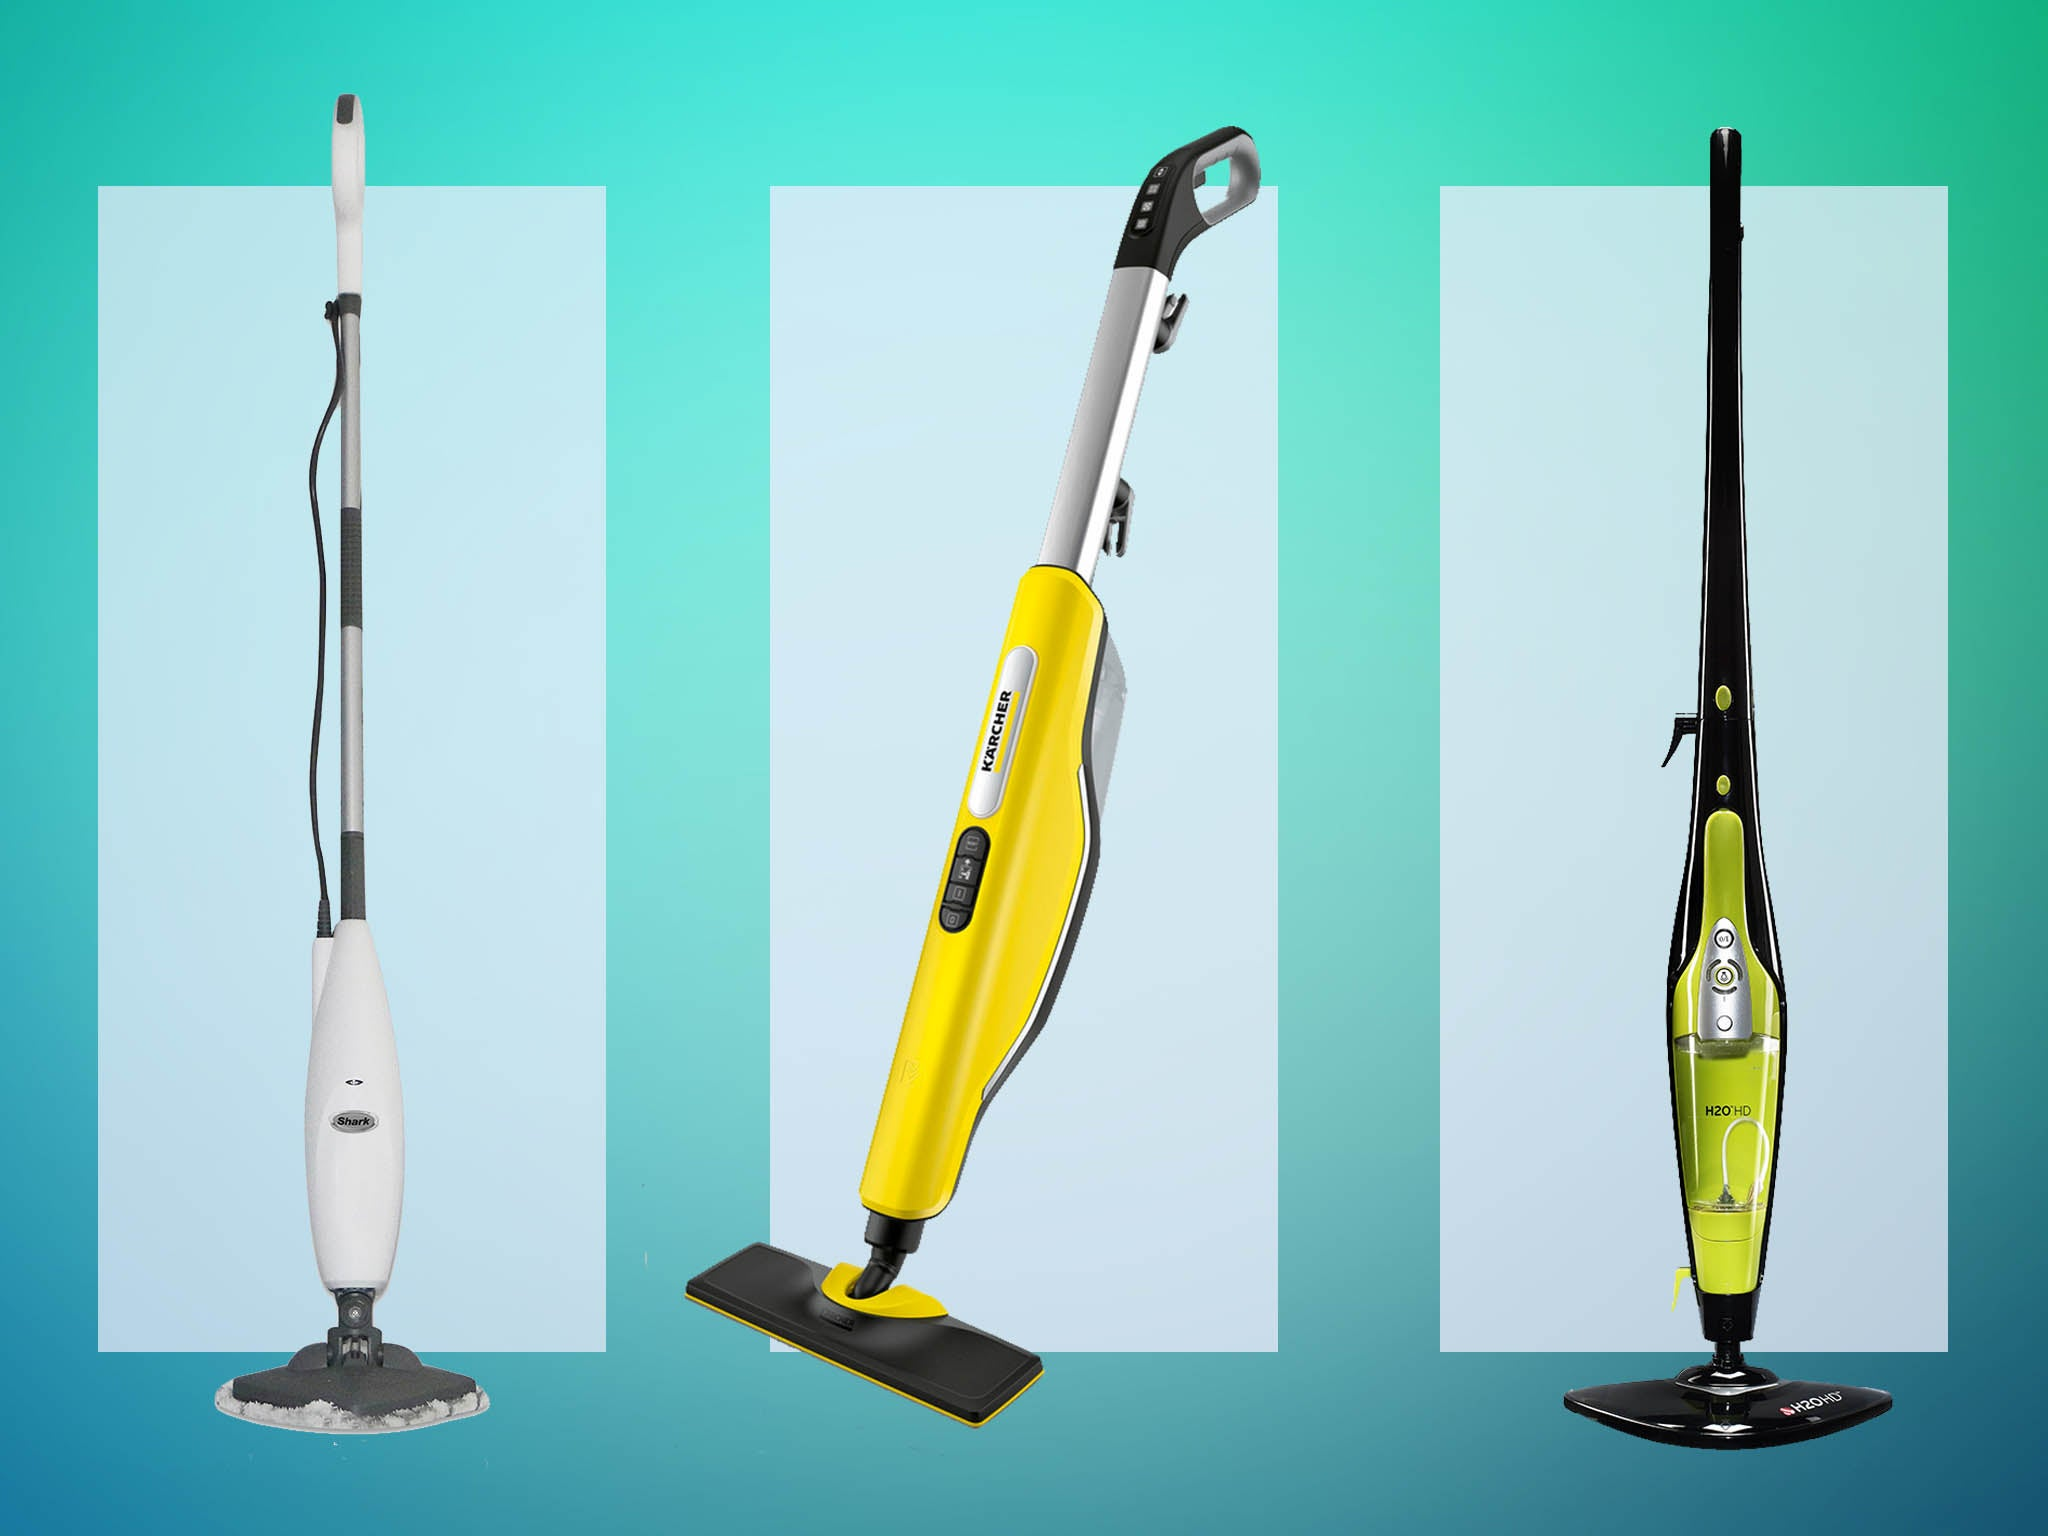 Best steam cleaners to keep your floors and surfaces sparkling